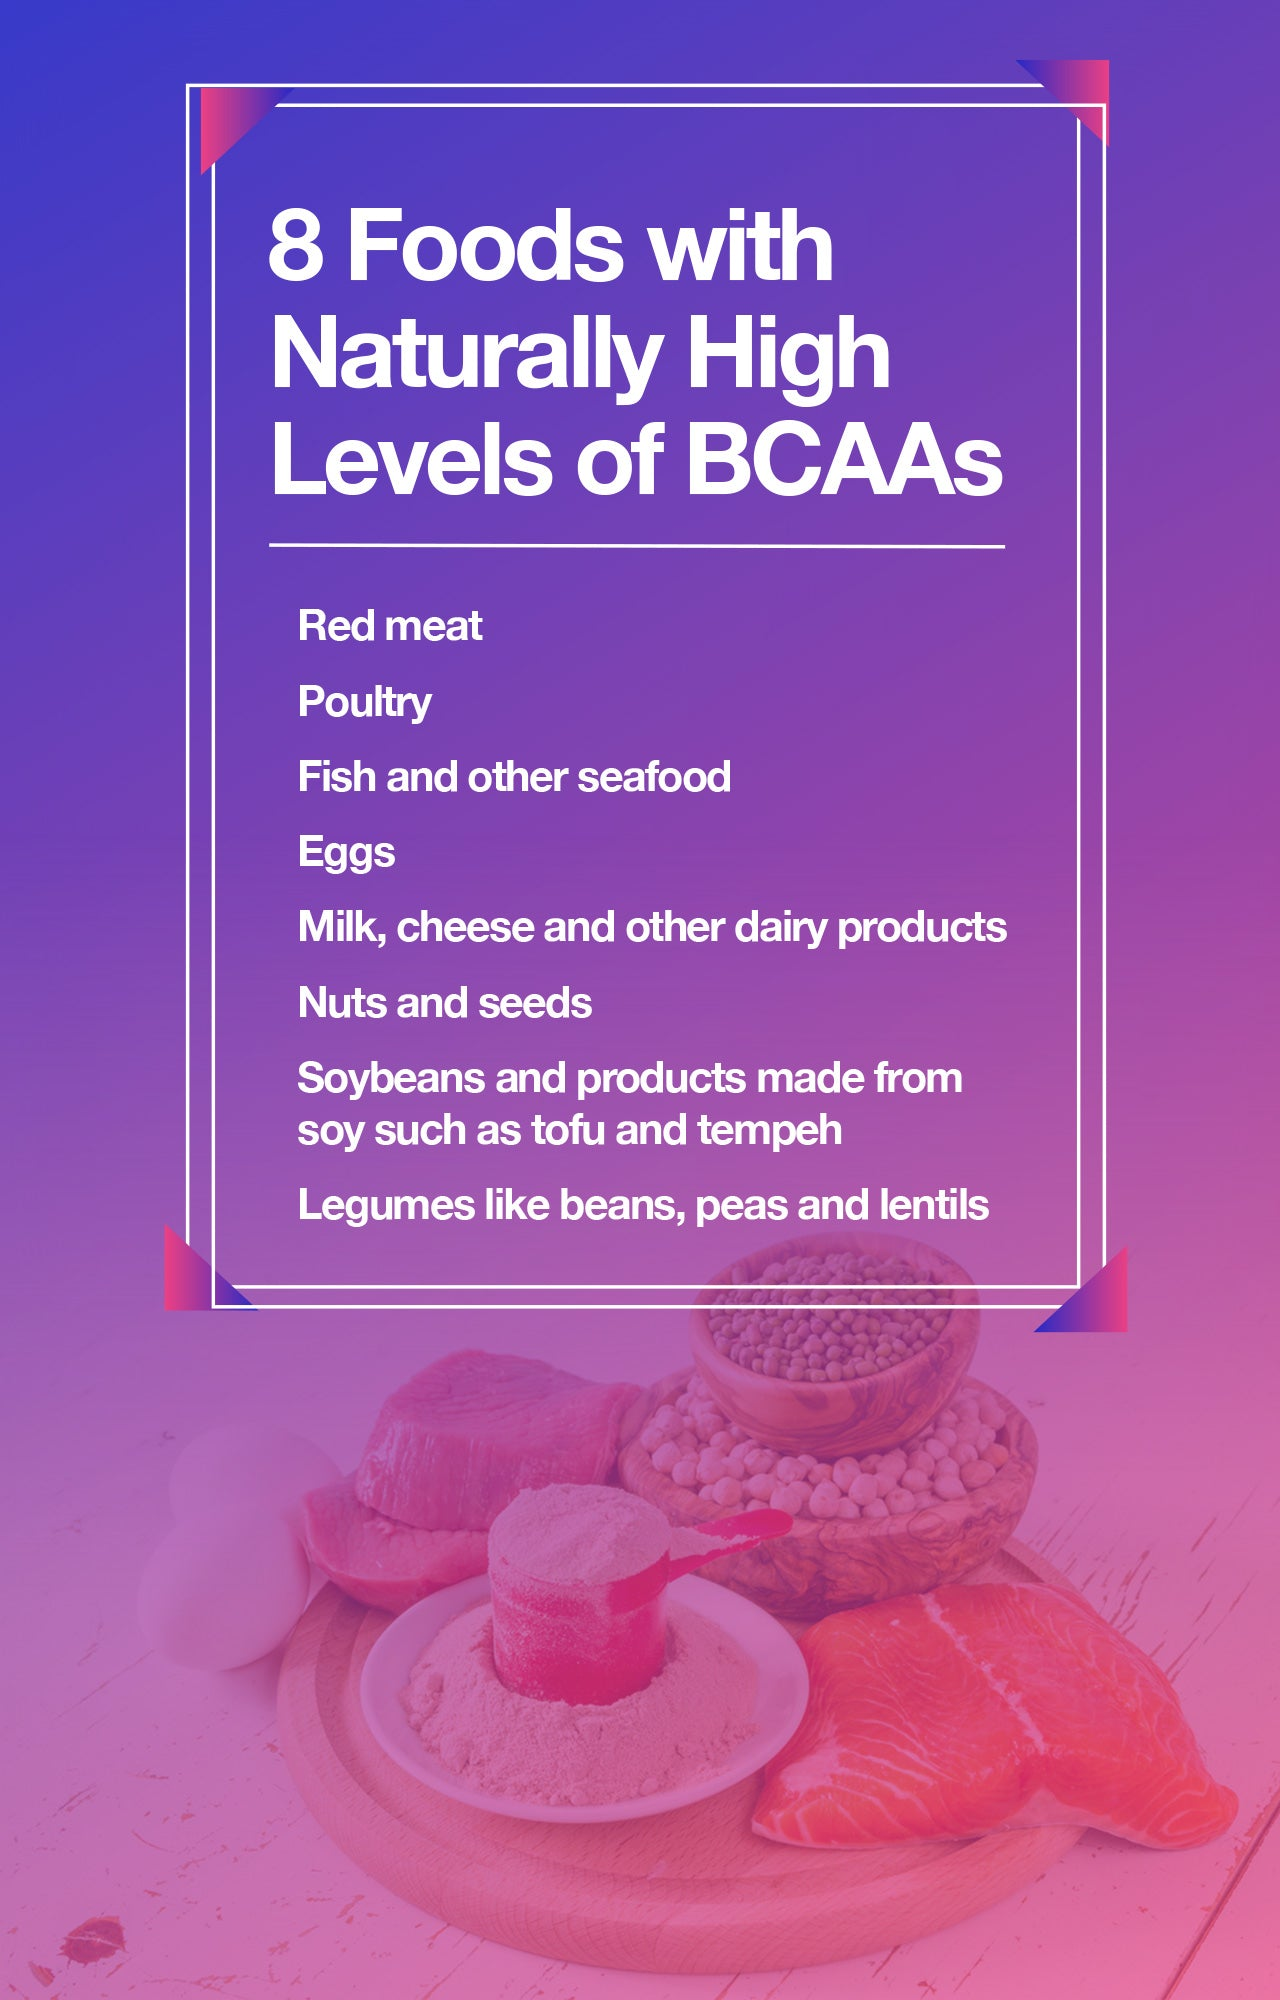 BCAA Supplements: Do They Really Work?